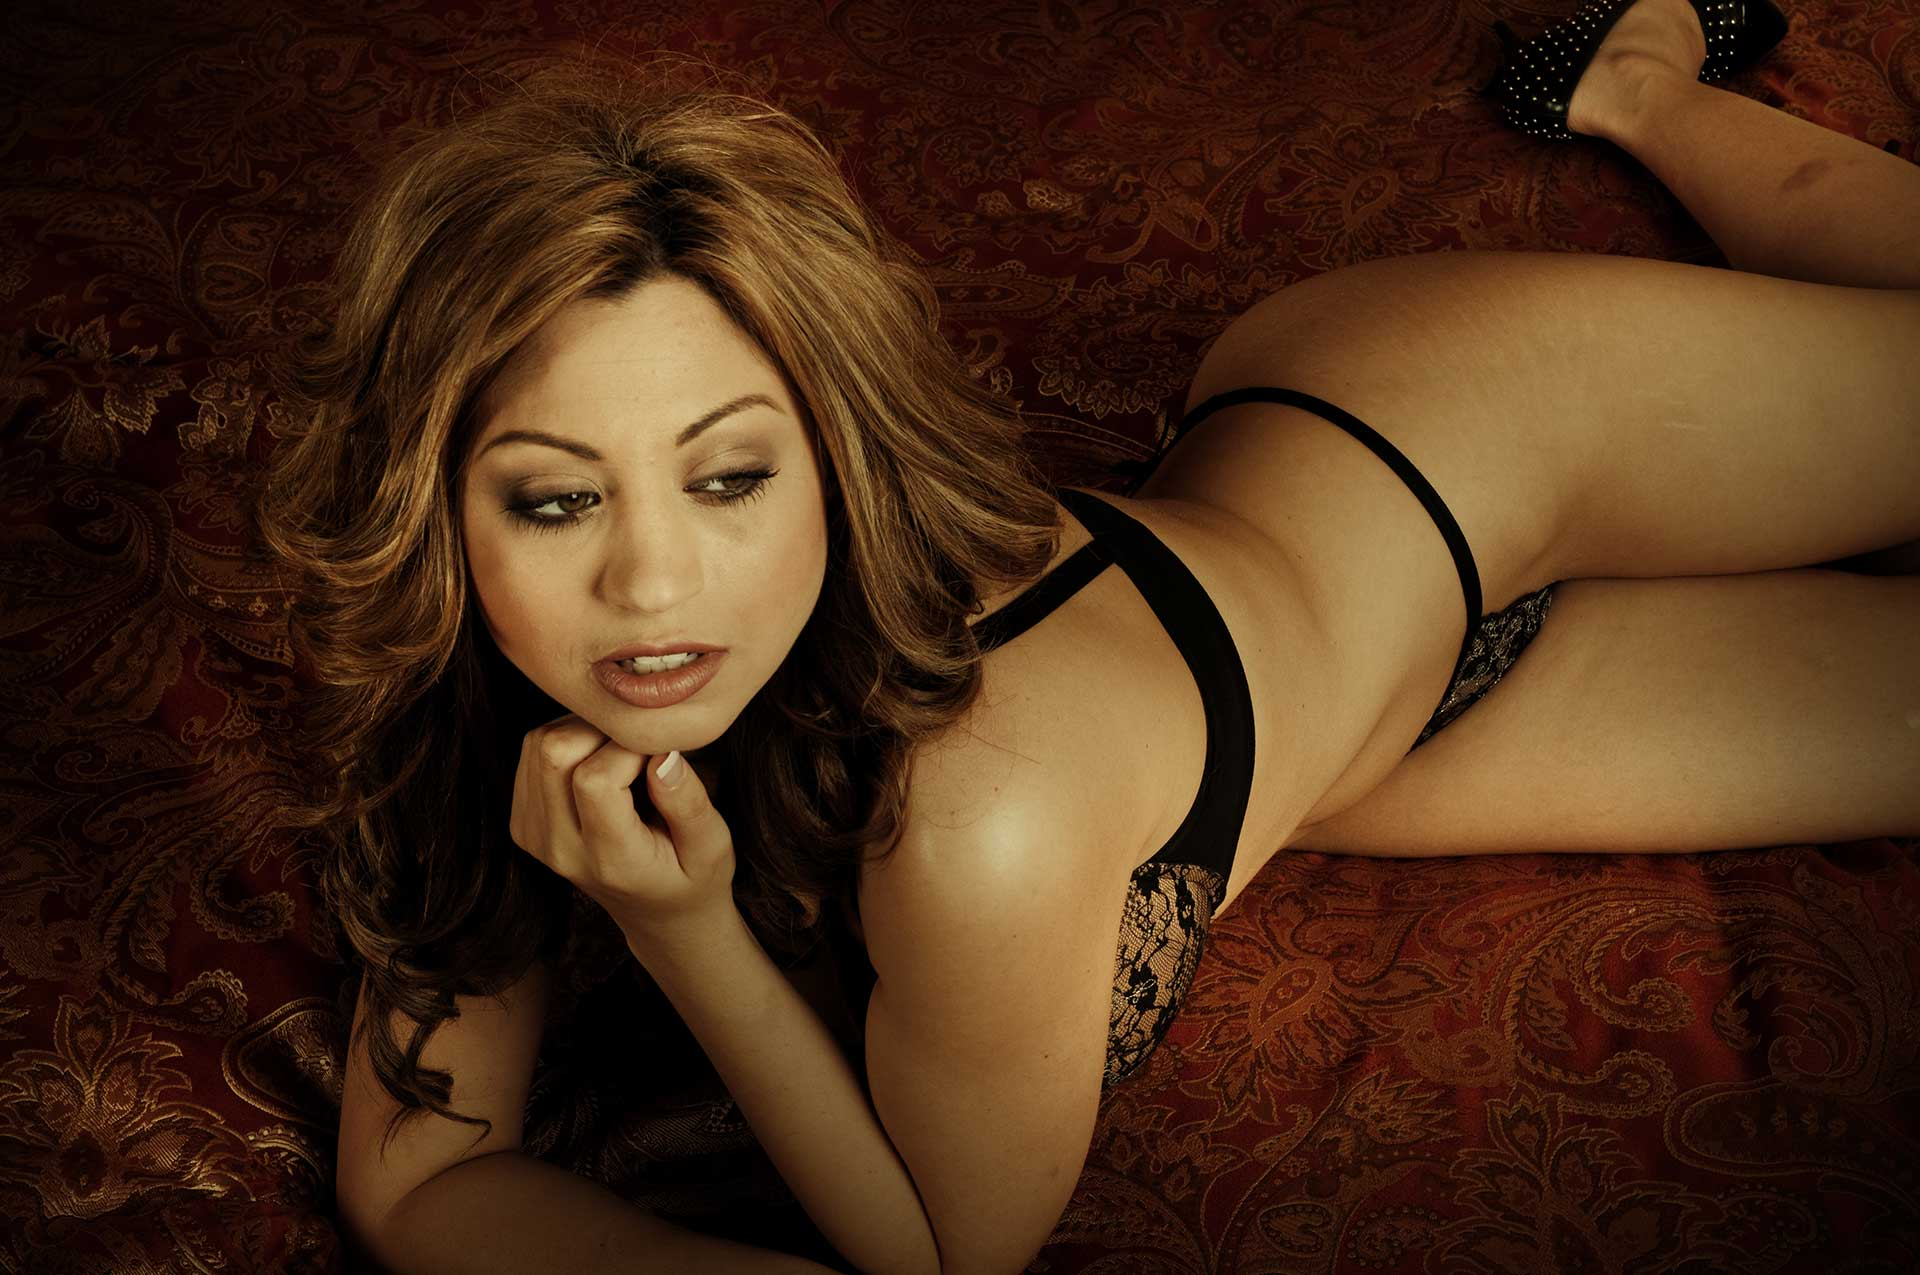 Stripper laying in lingerie on couch